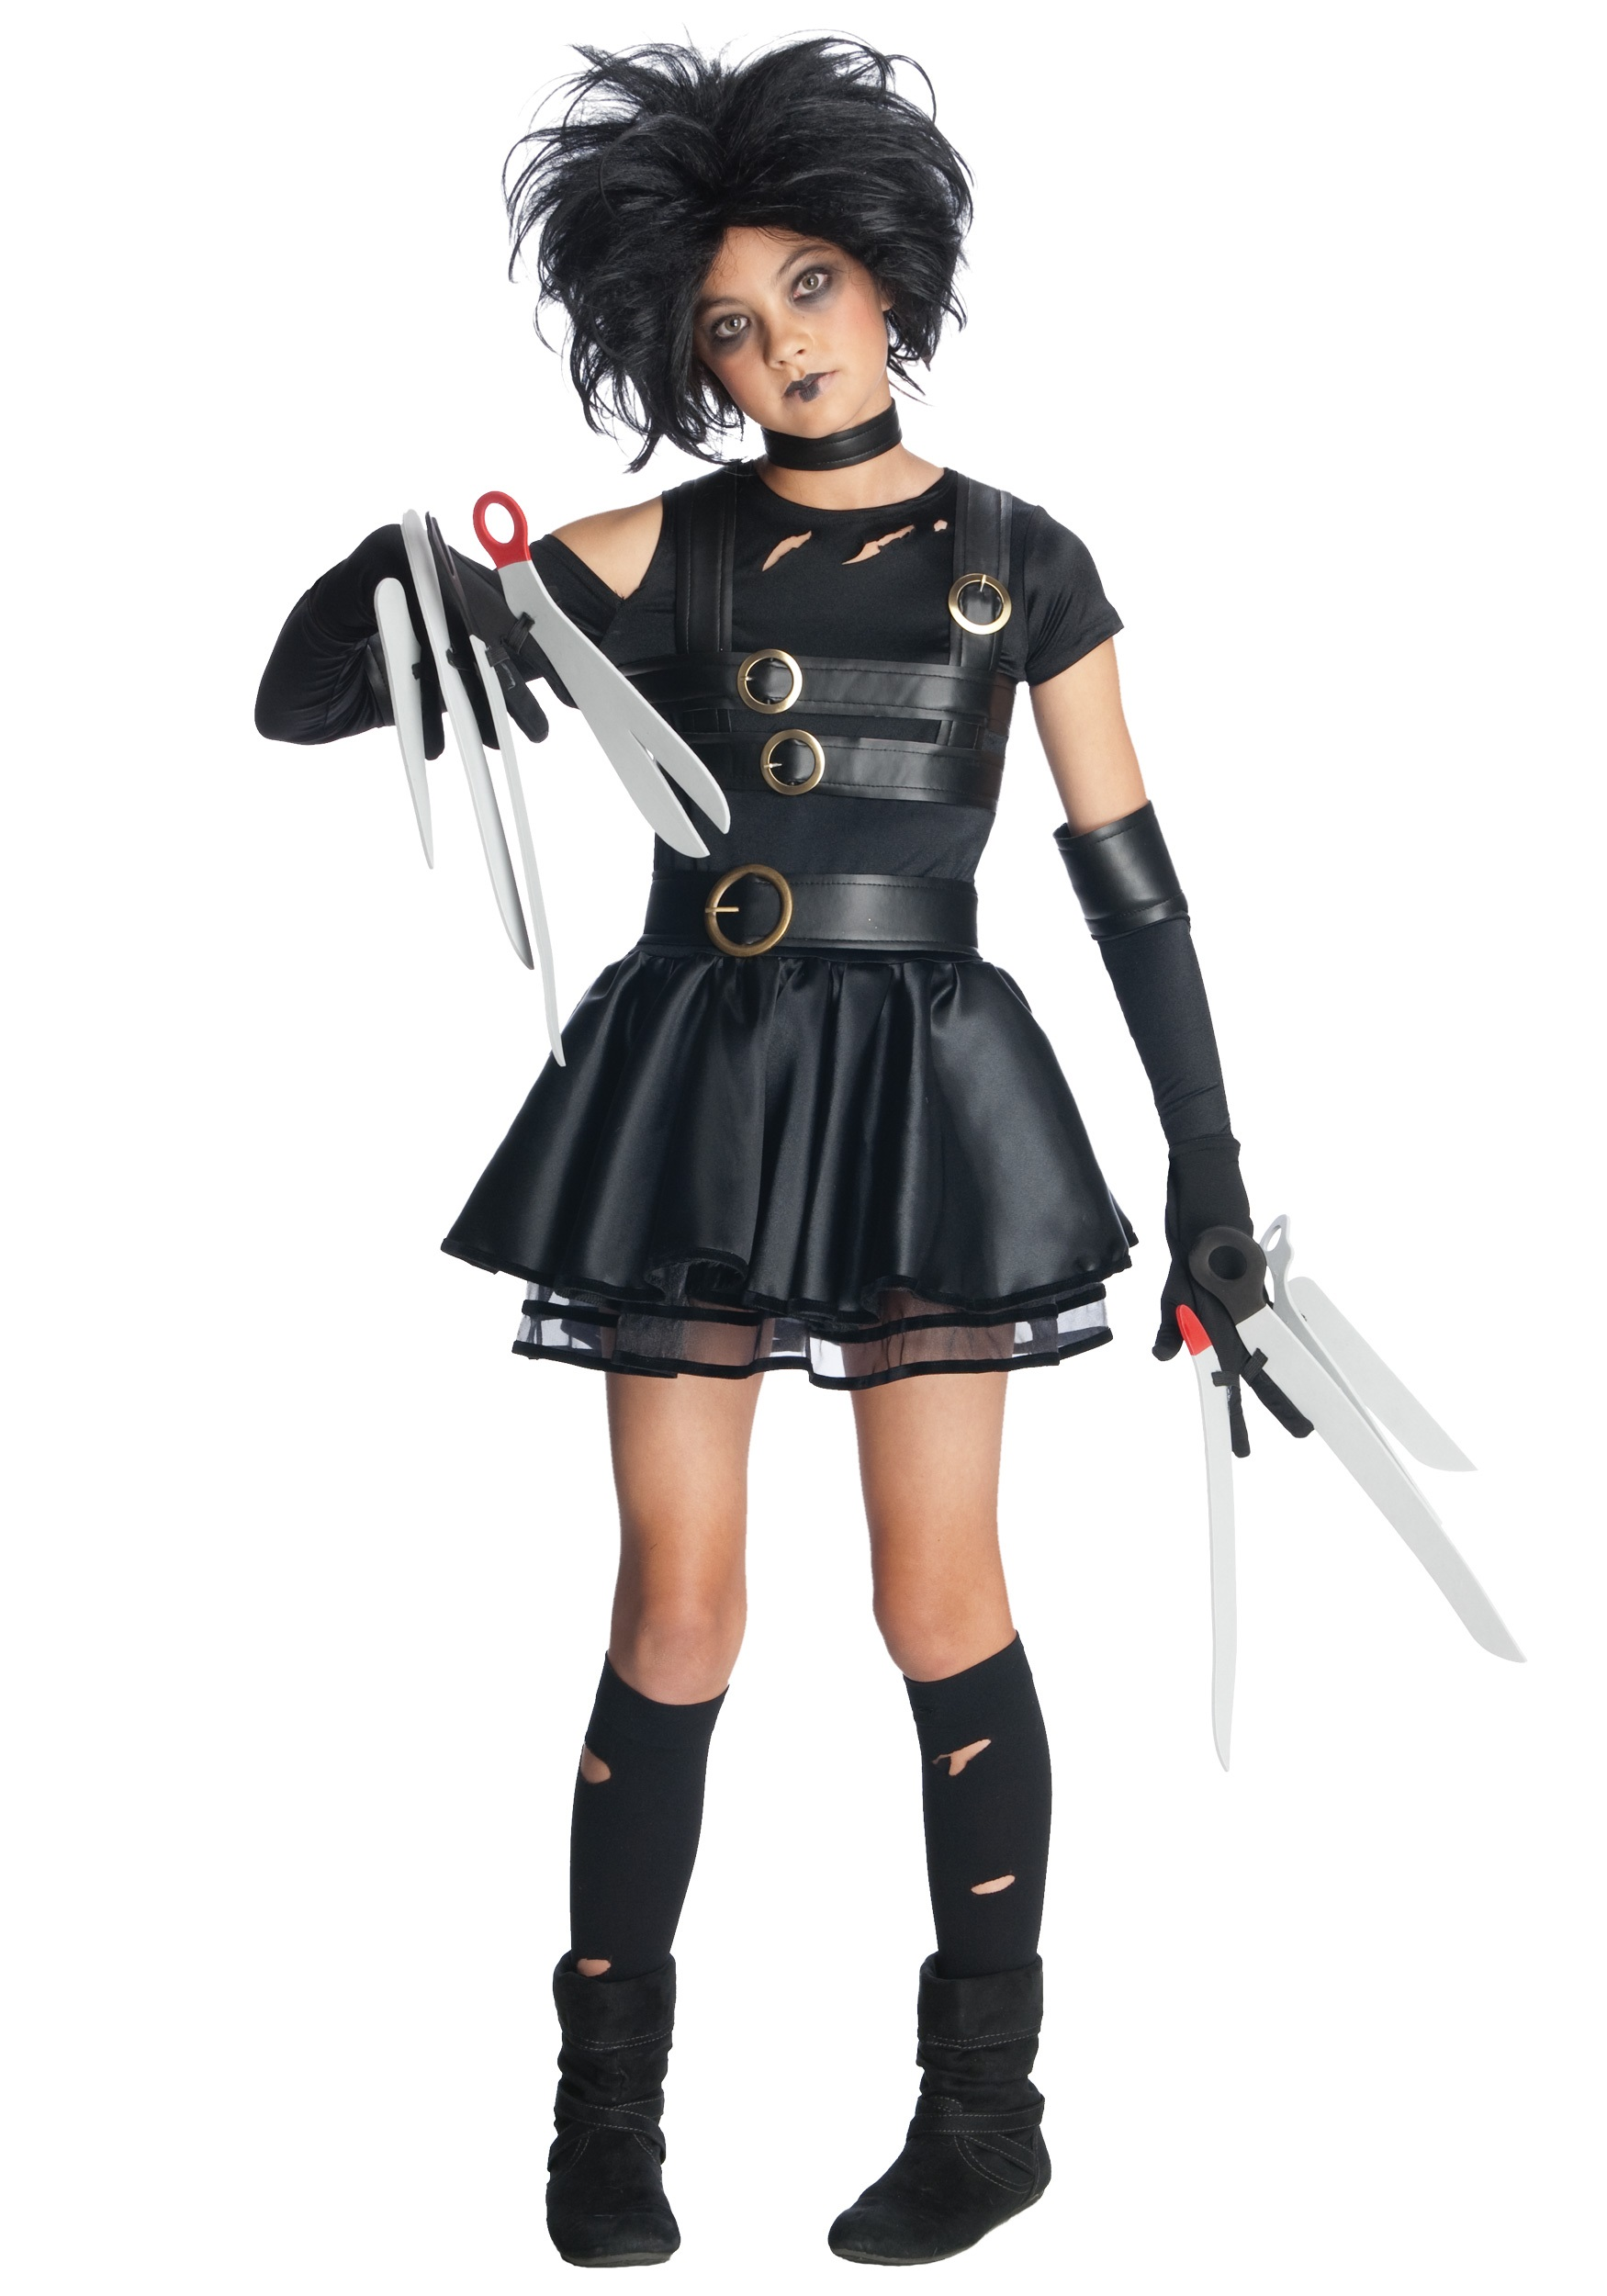 Halloween Costumes for Teens & Tweens - HalloweenCostumes.com